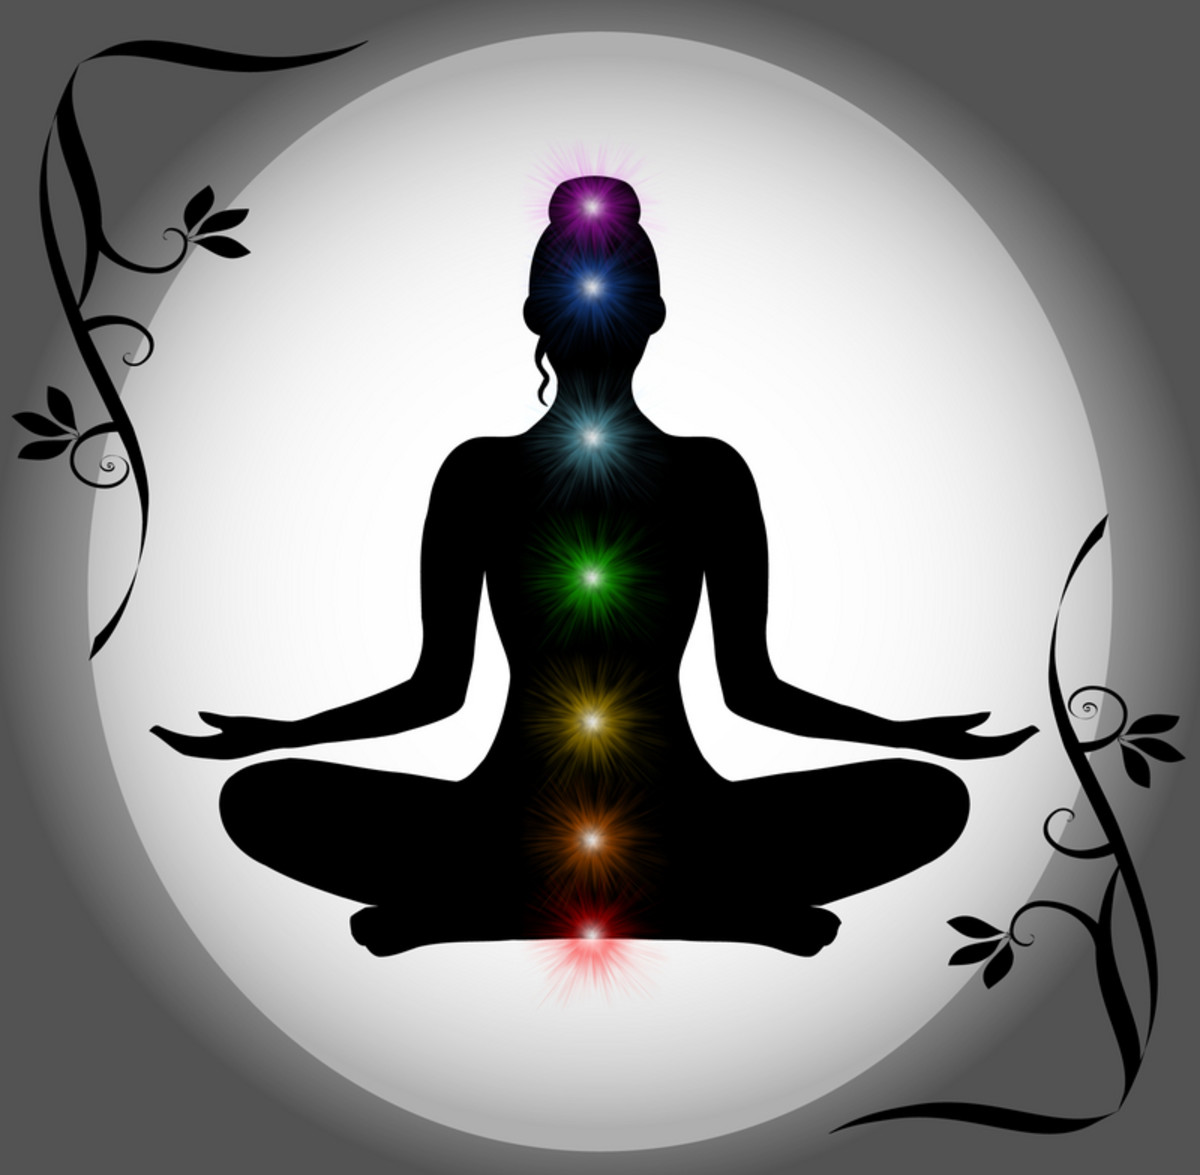 The diaphragm is located between the third and fourth chakra.